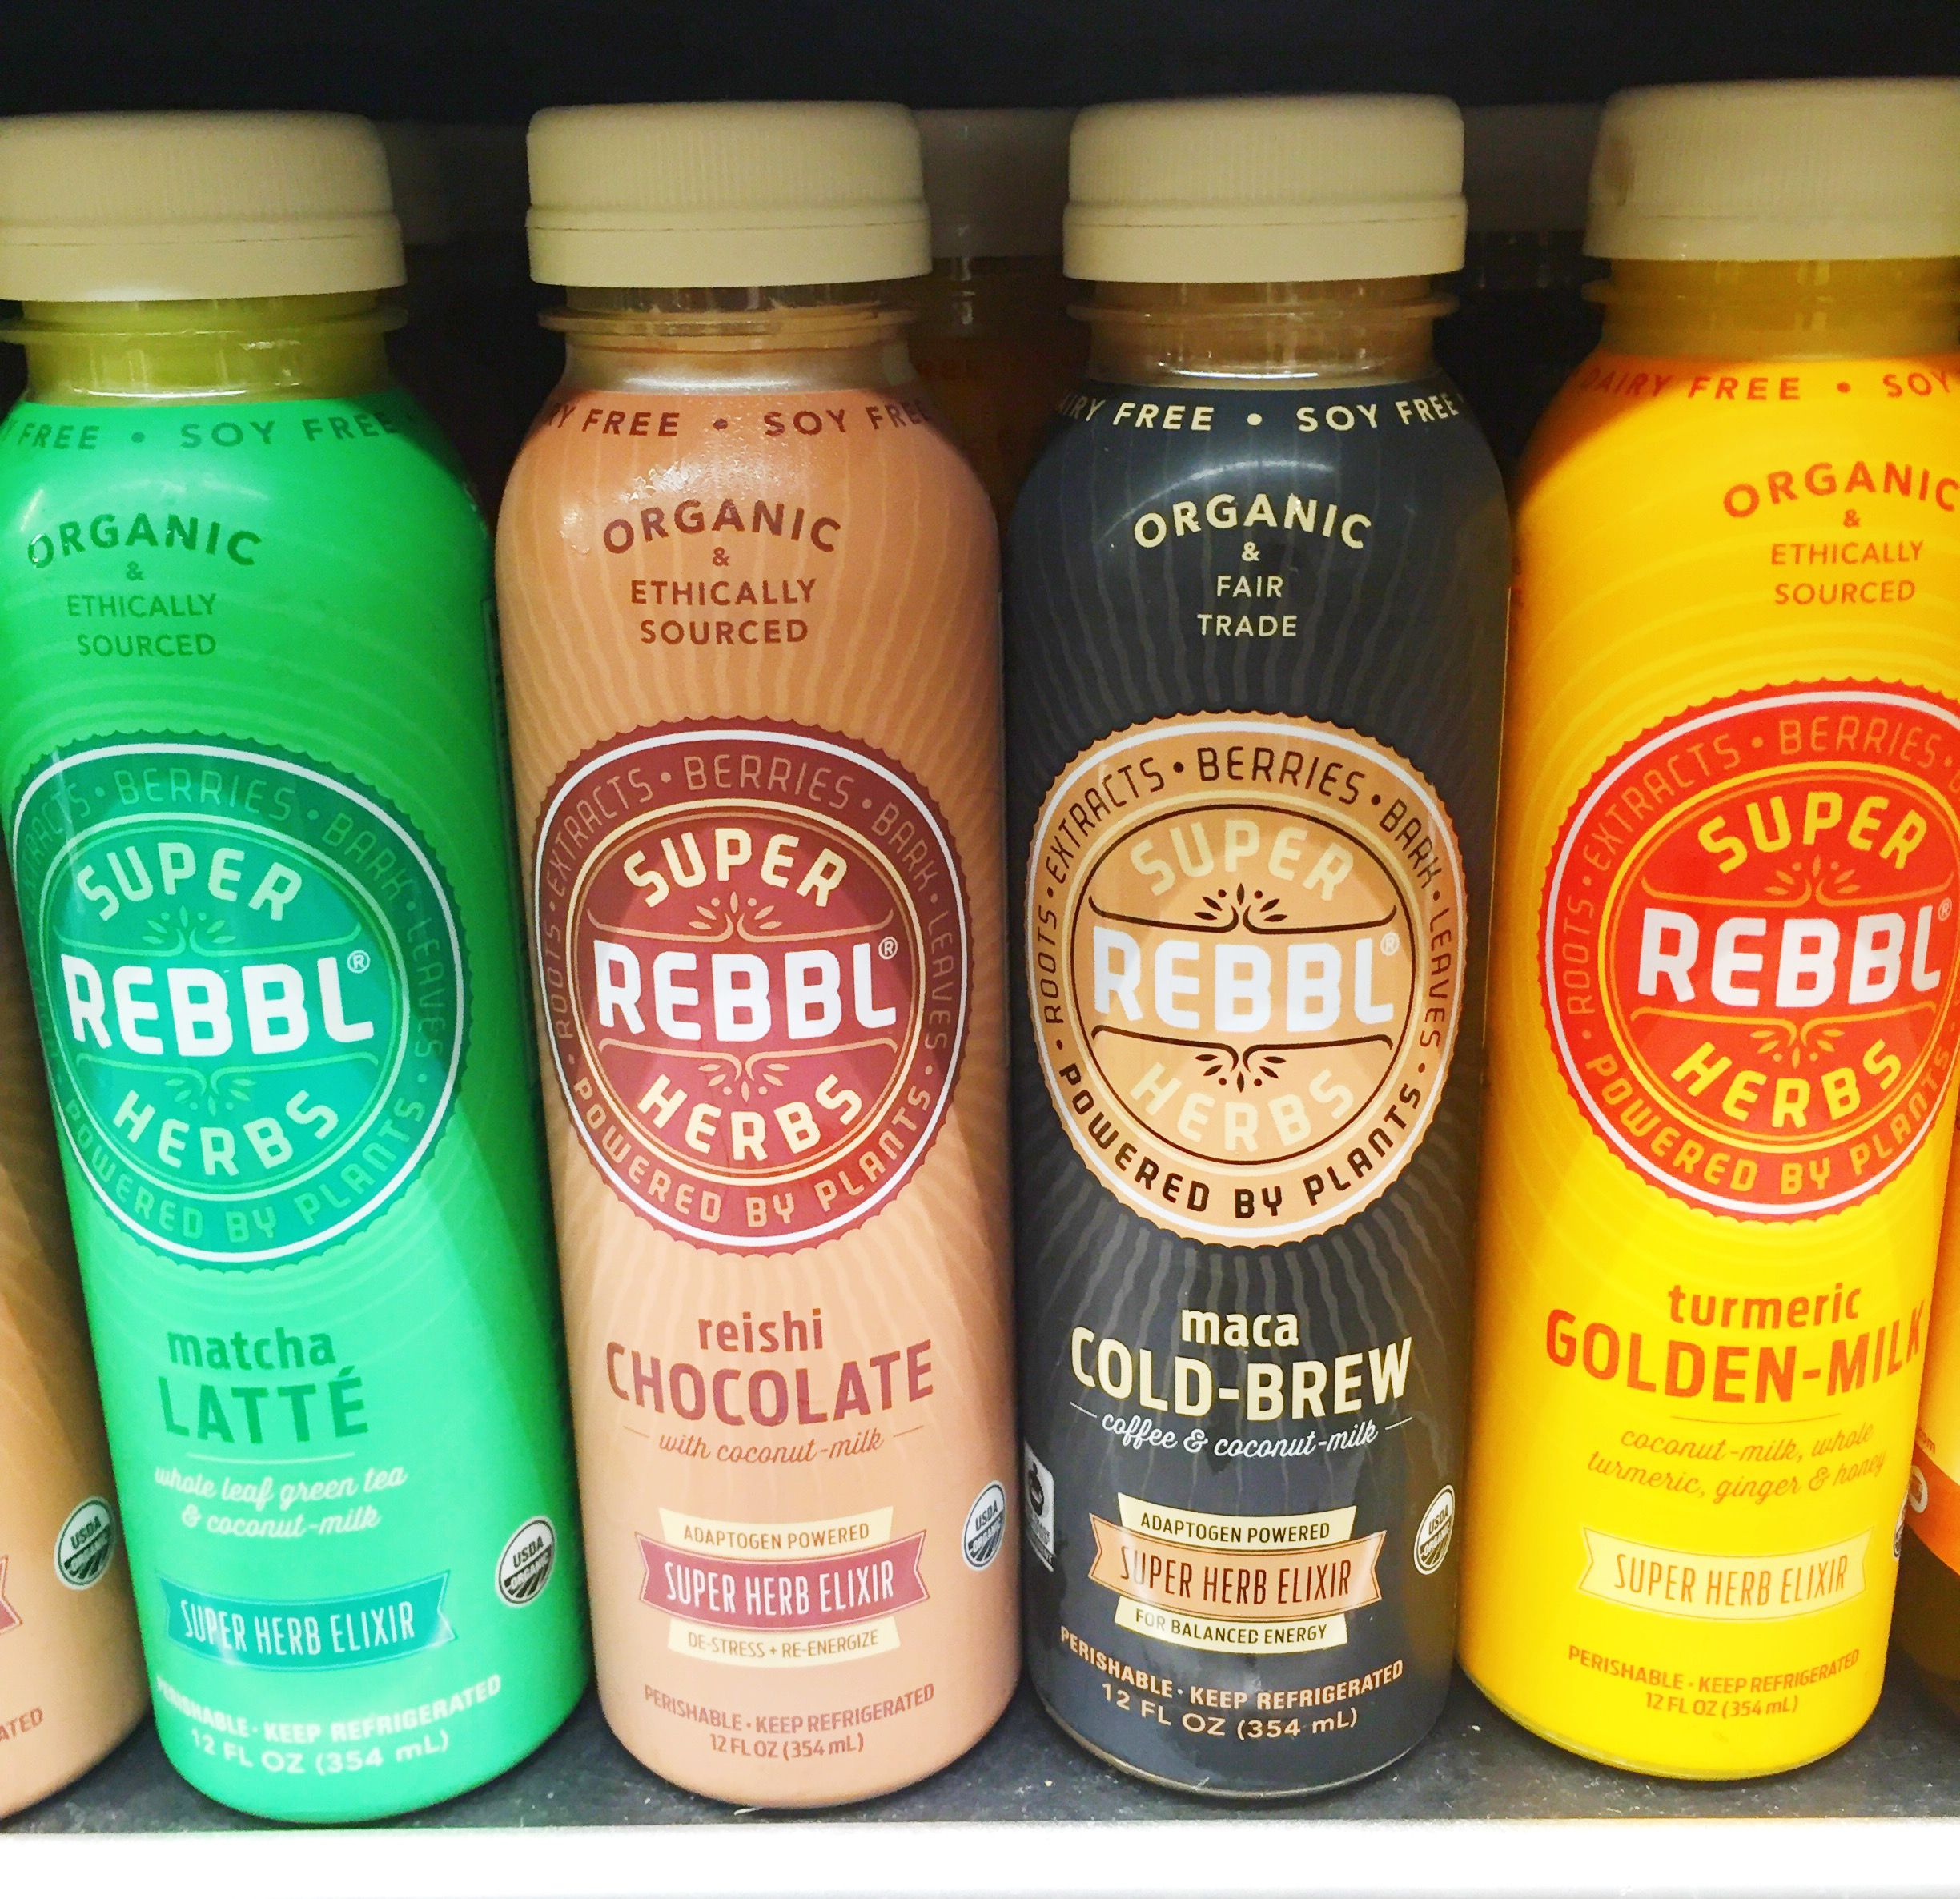 Rebbl Drink: Got Super Excited Seeing @rebbl Drinks In Sprouts!!! Have